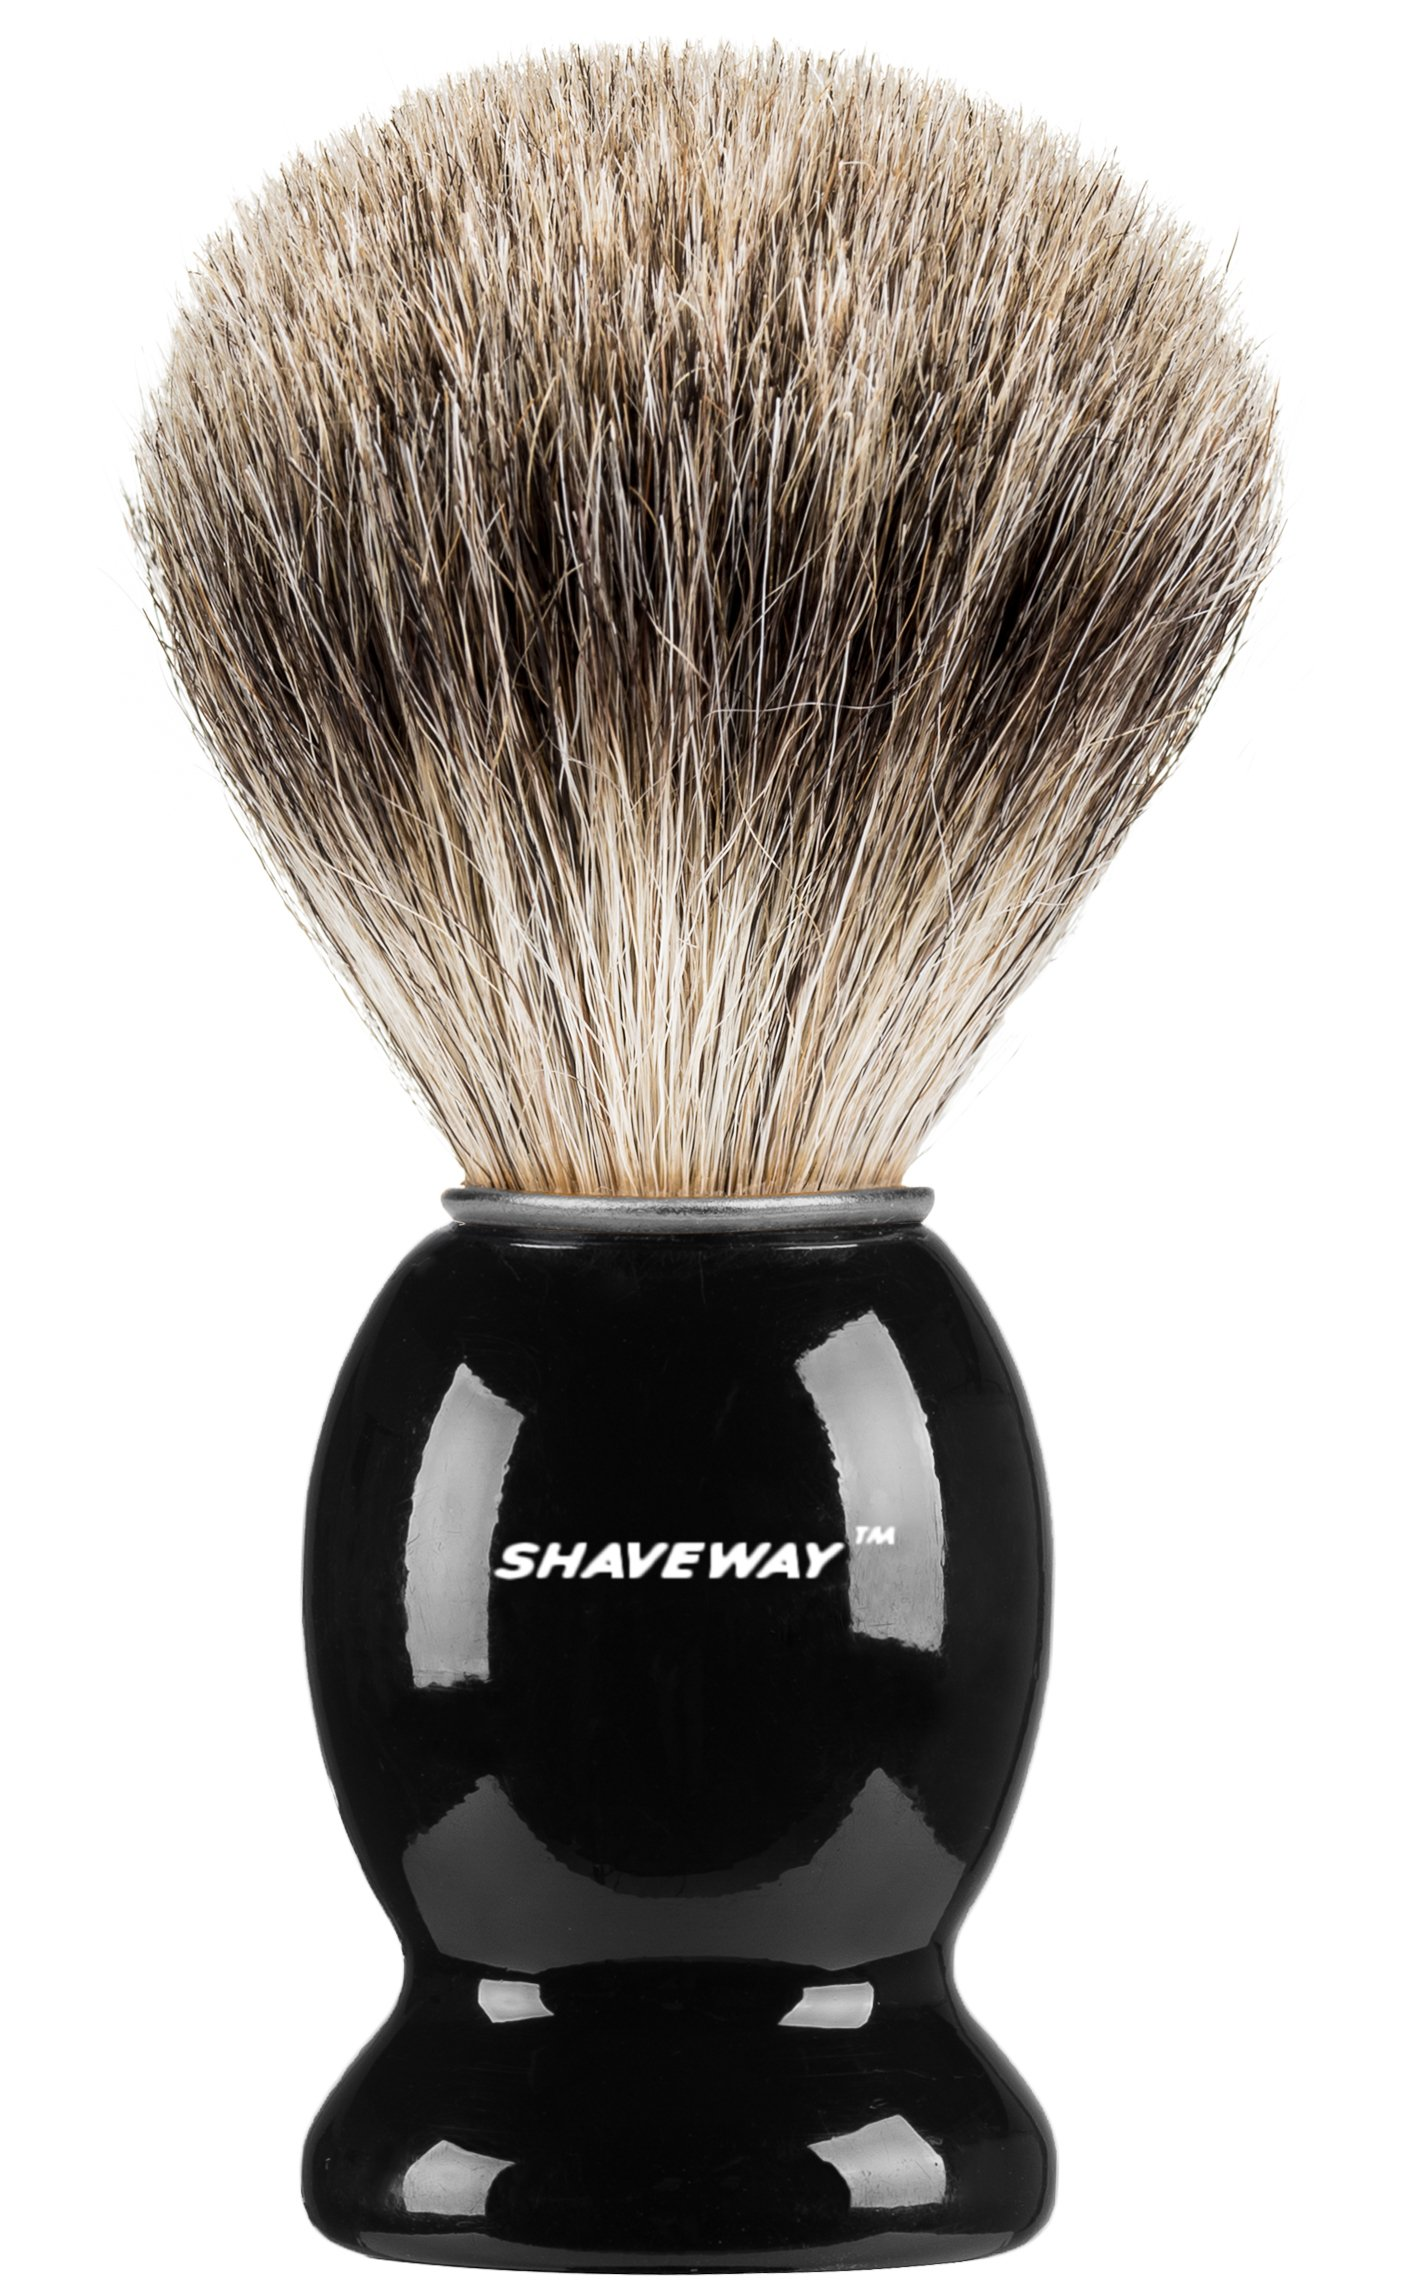 Shaveway 100% Pure Badger Shaving Brush-Engineered to deliver the Best Shave of Your Life!!! No Matter what method you use, Safety Razor, Double Edge Razor, Staight Razor or Shaving Razor,. …